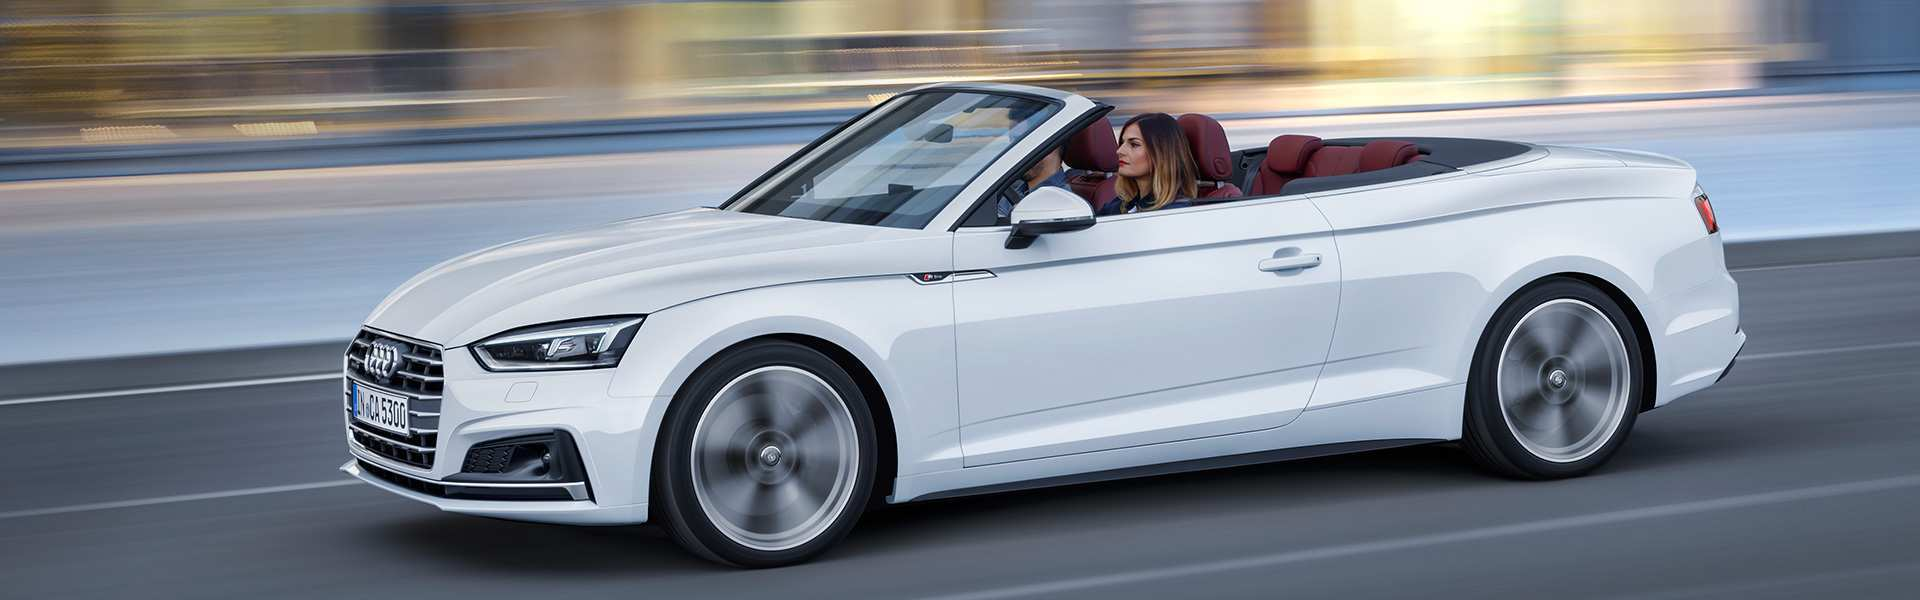 96 All New 2019 Audi Rs5 Cabriolet Reviews